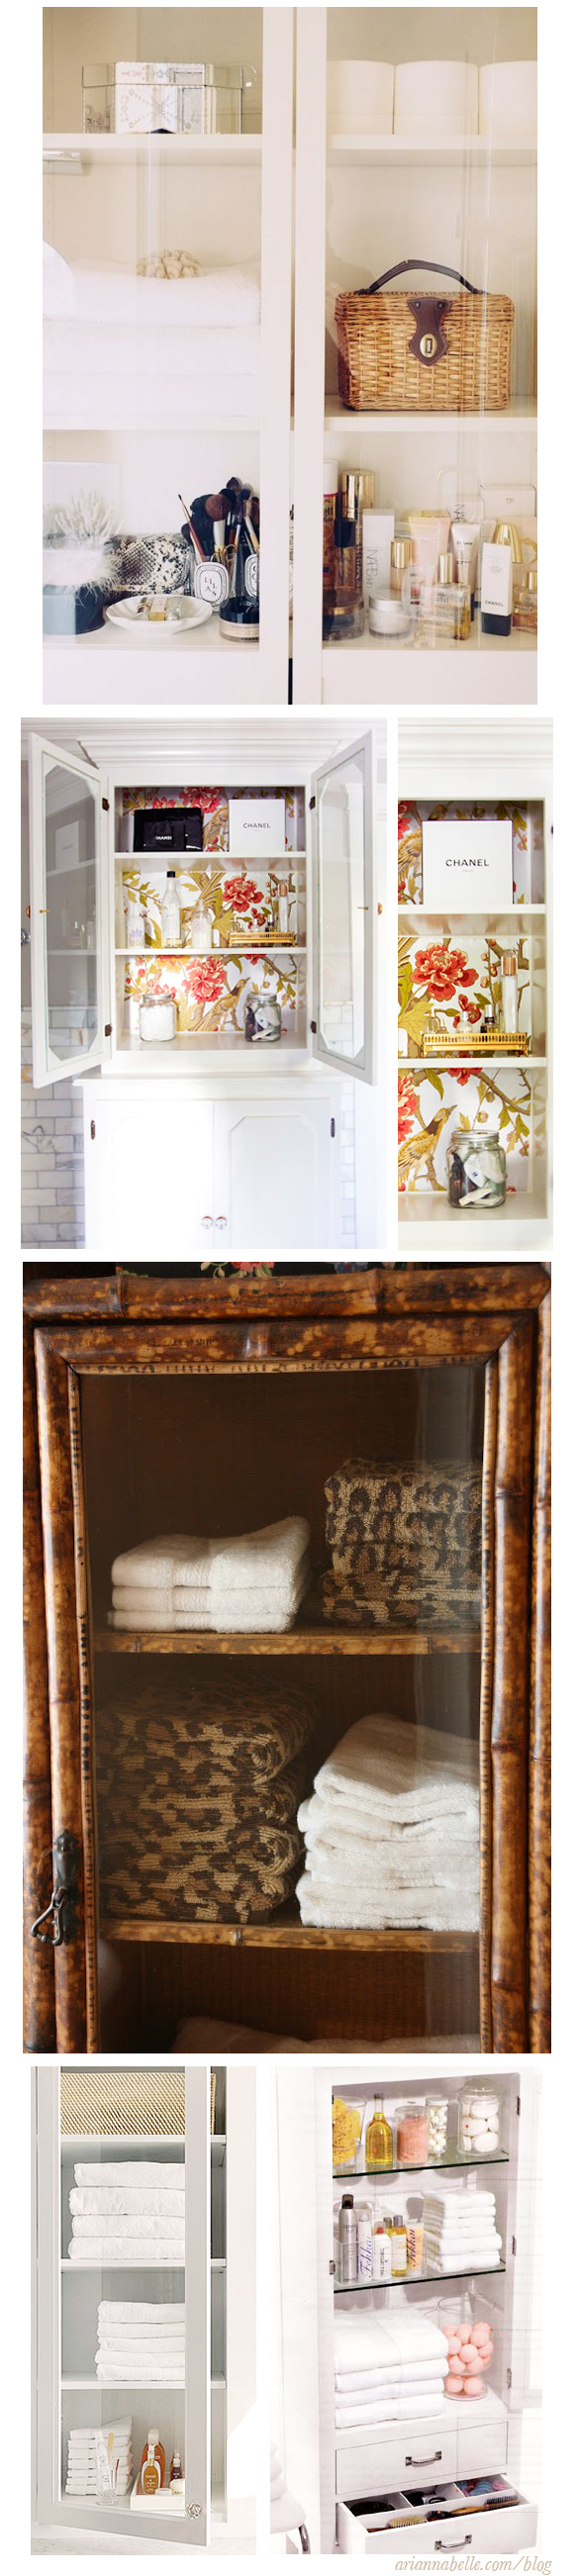 glass-front-bathroom-cabinets-Arianna-Belle-Blog   Glass ...